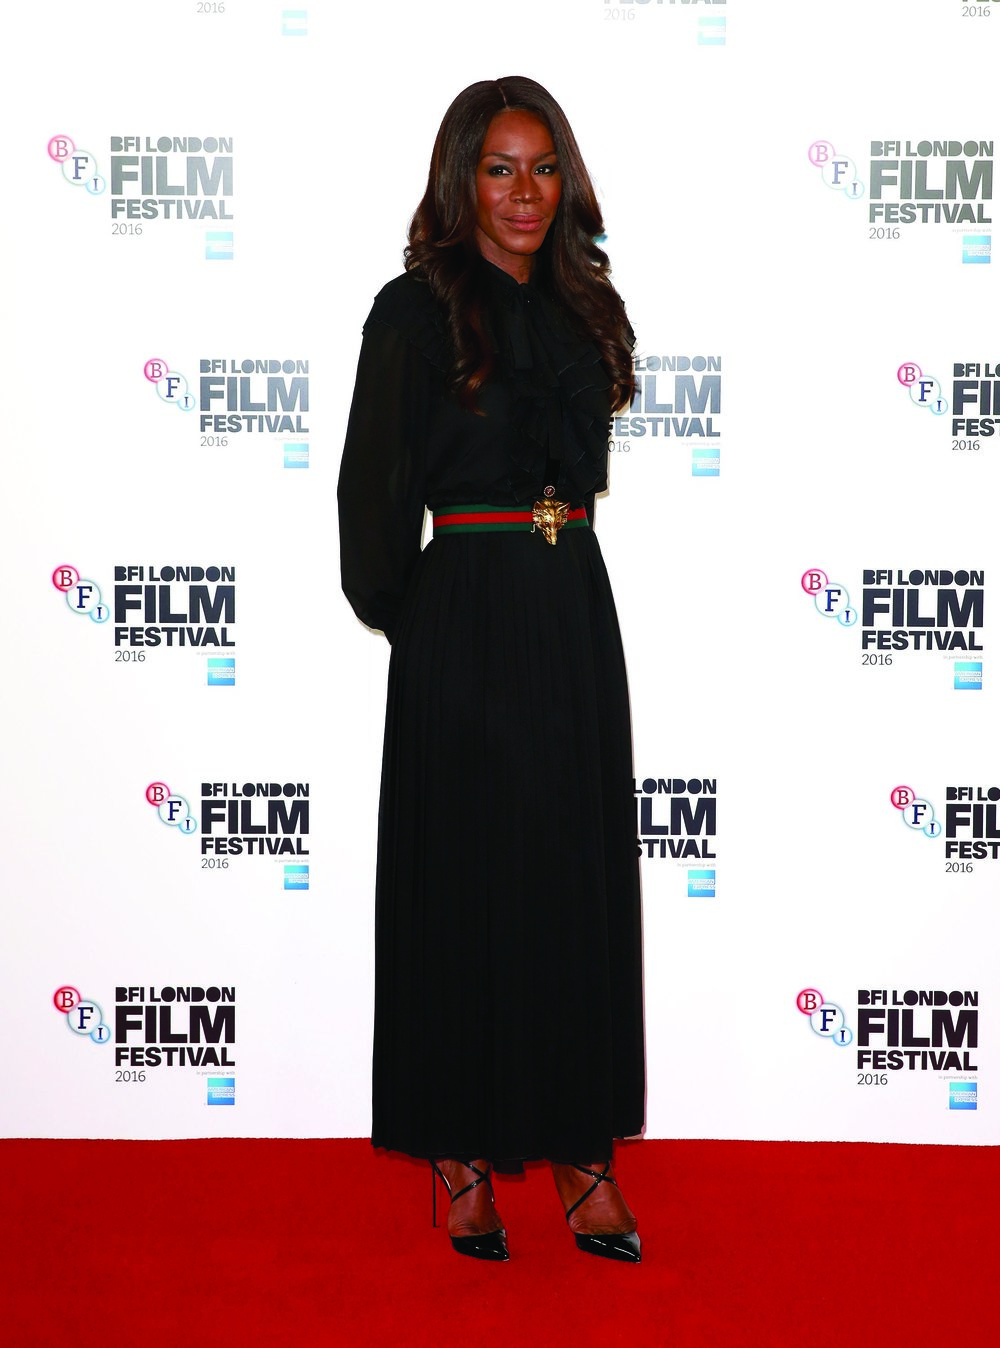 Image: Amma Asante at the BFI London Film Festival